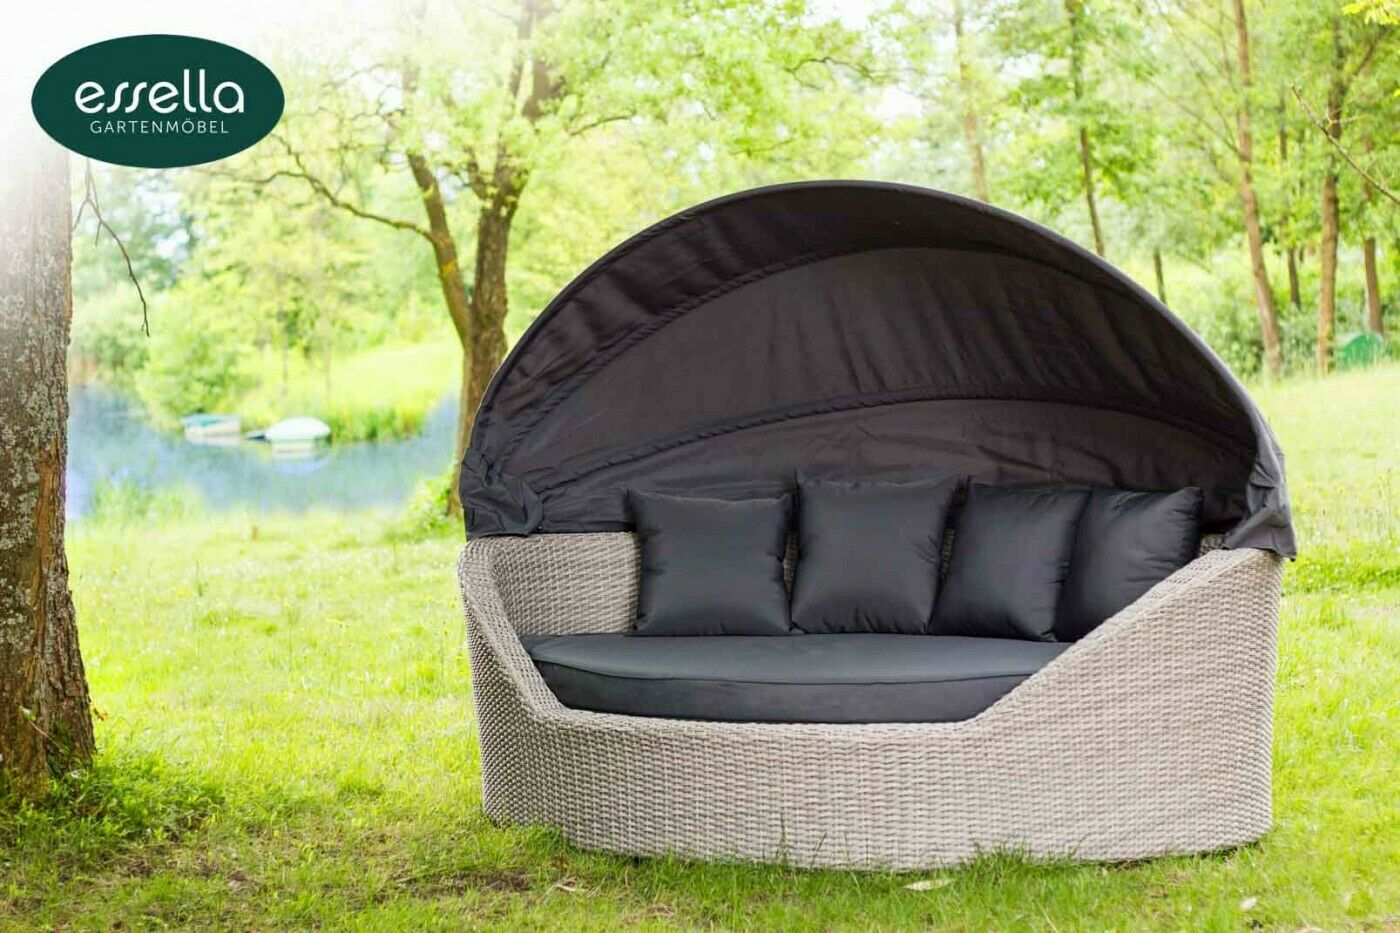 essella polyrattan sonneninsel garten liege muschel love seat gartenm bel set eur. Black Bedroom Furniture Sets. Home Design Ideas